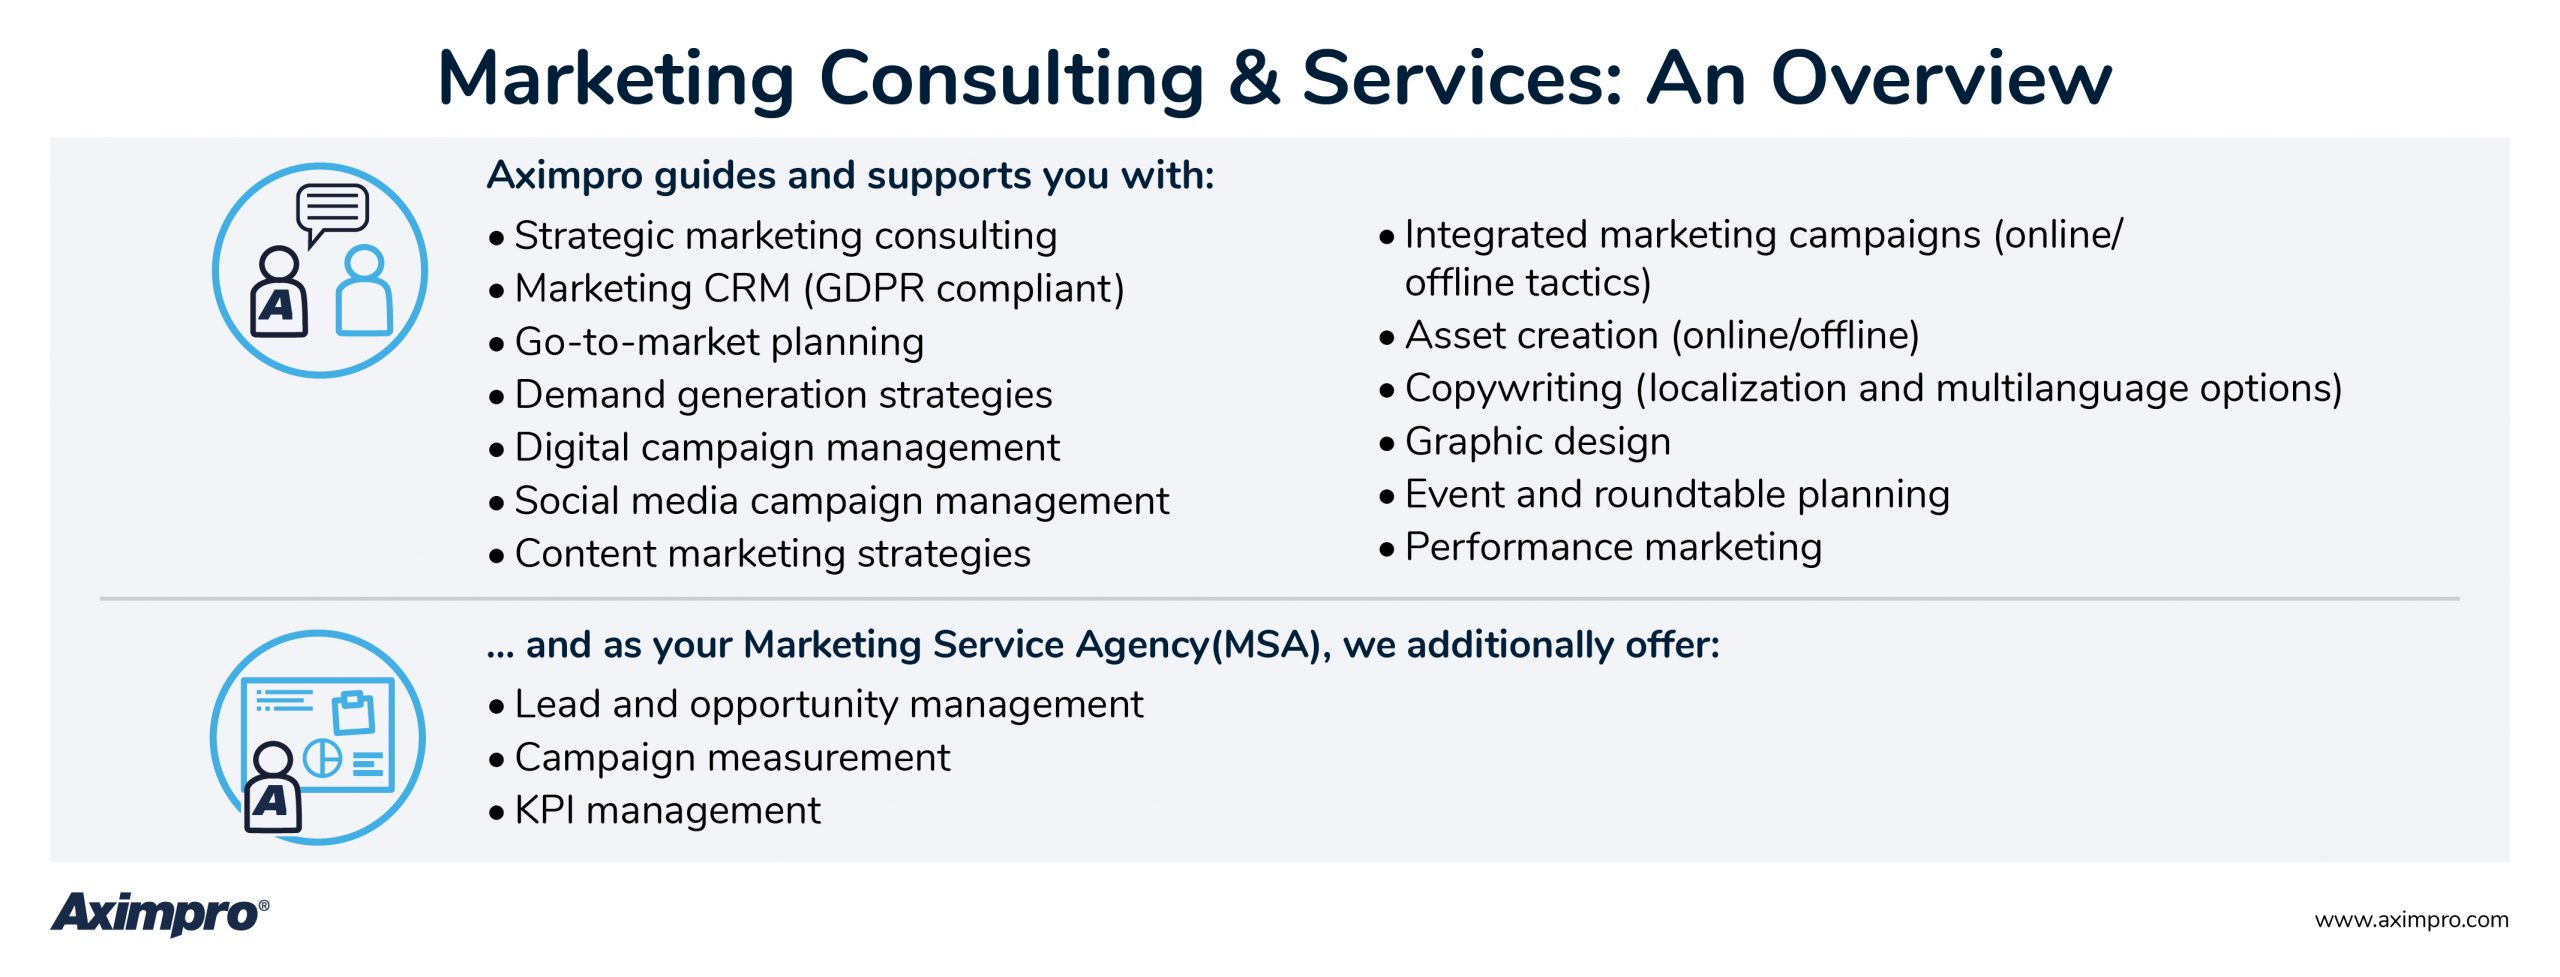 Aximpro Marketing Consulting & Services